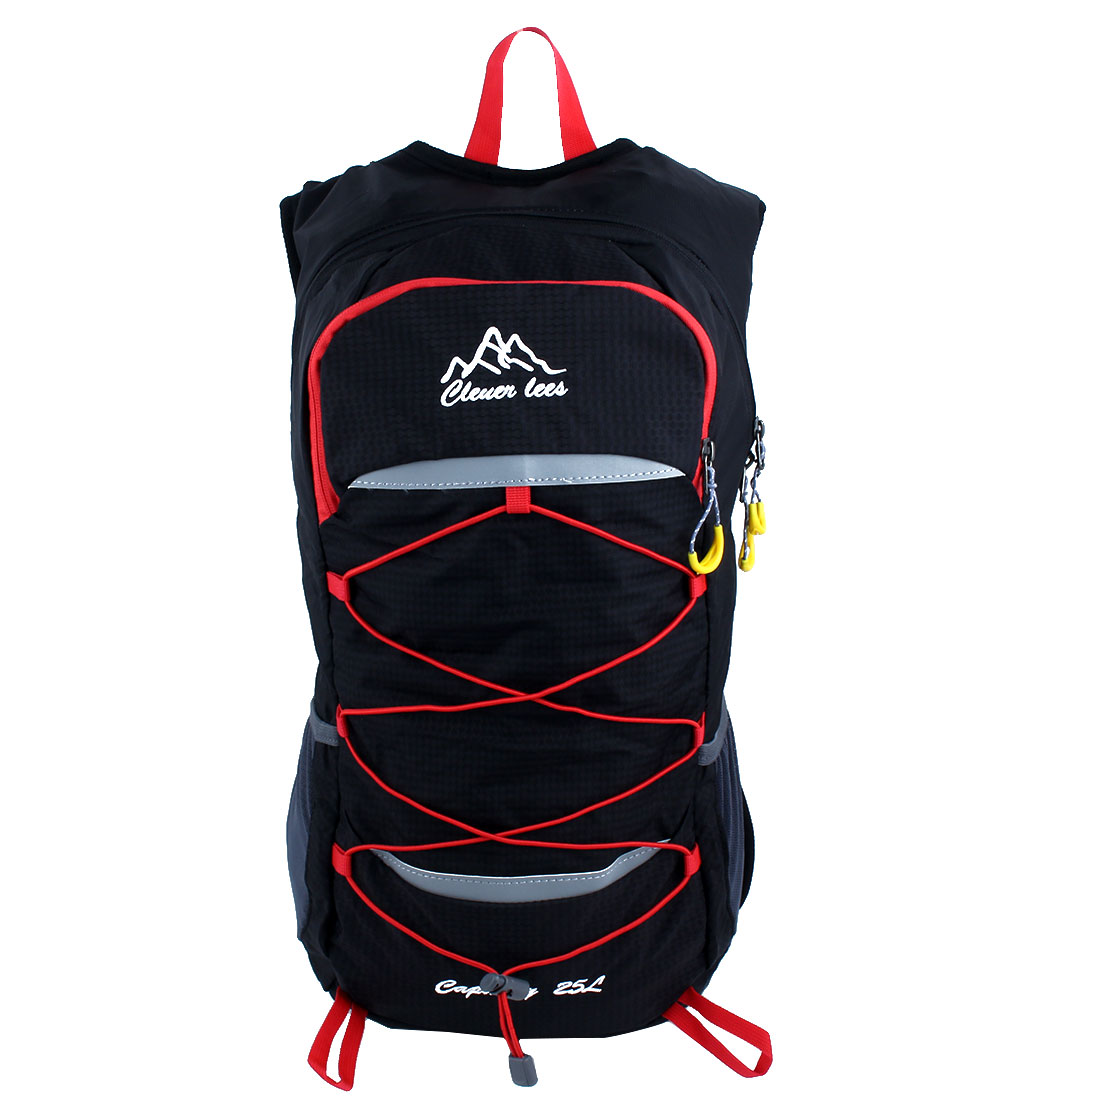 Camping Hiking Climbing Backpack Cycling Daypack Outdoor Sports Bag Black by